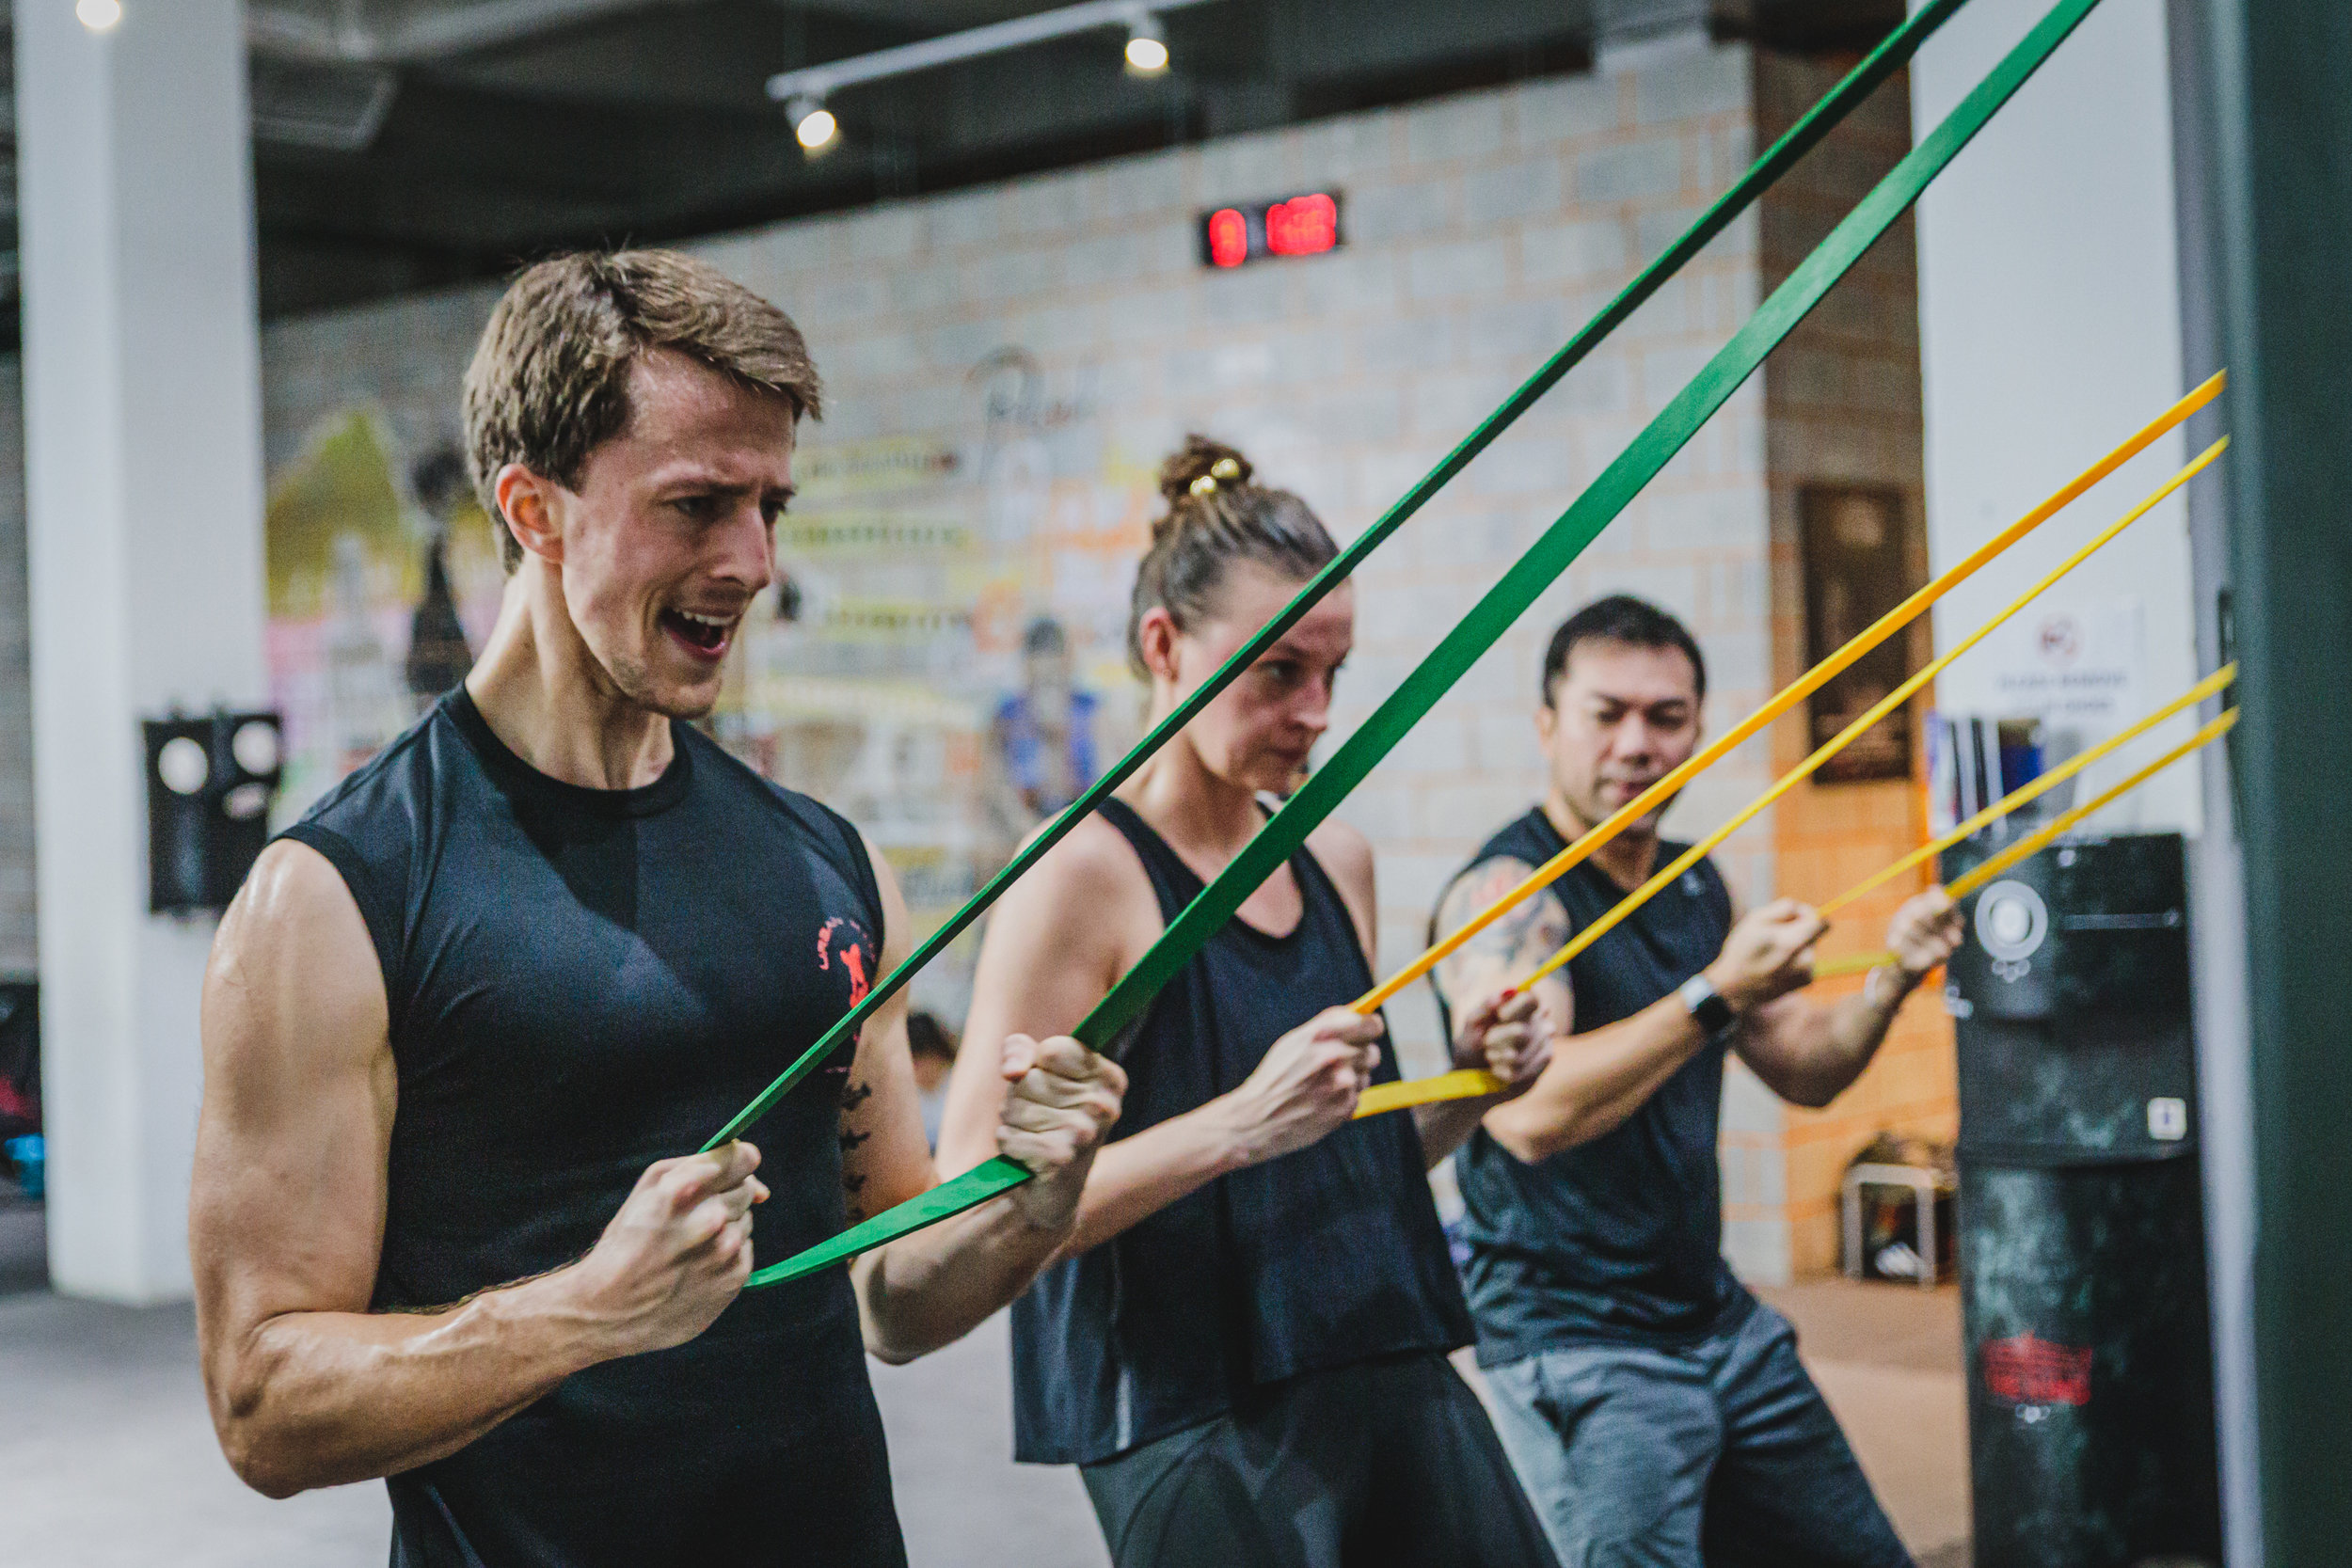 H.e.a.t - This 60-minute High Energy Athletic Training is a full body workout class to improve your cardiovascular strength, muscle endurance, power and functional range through innovative and traditional training methods.